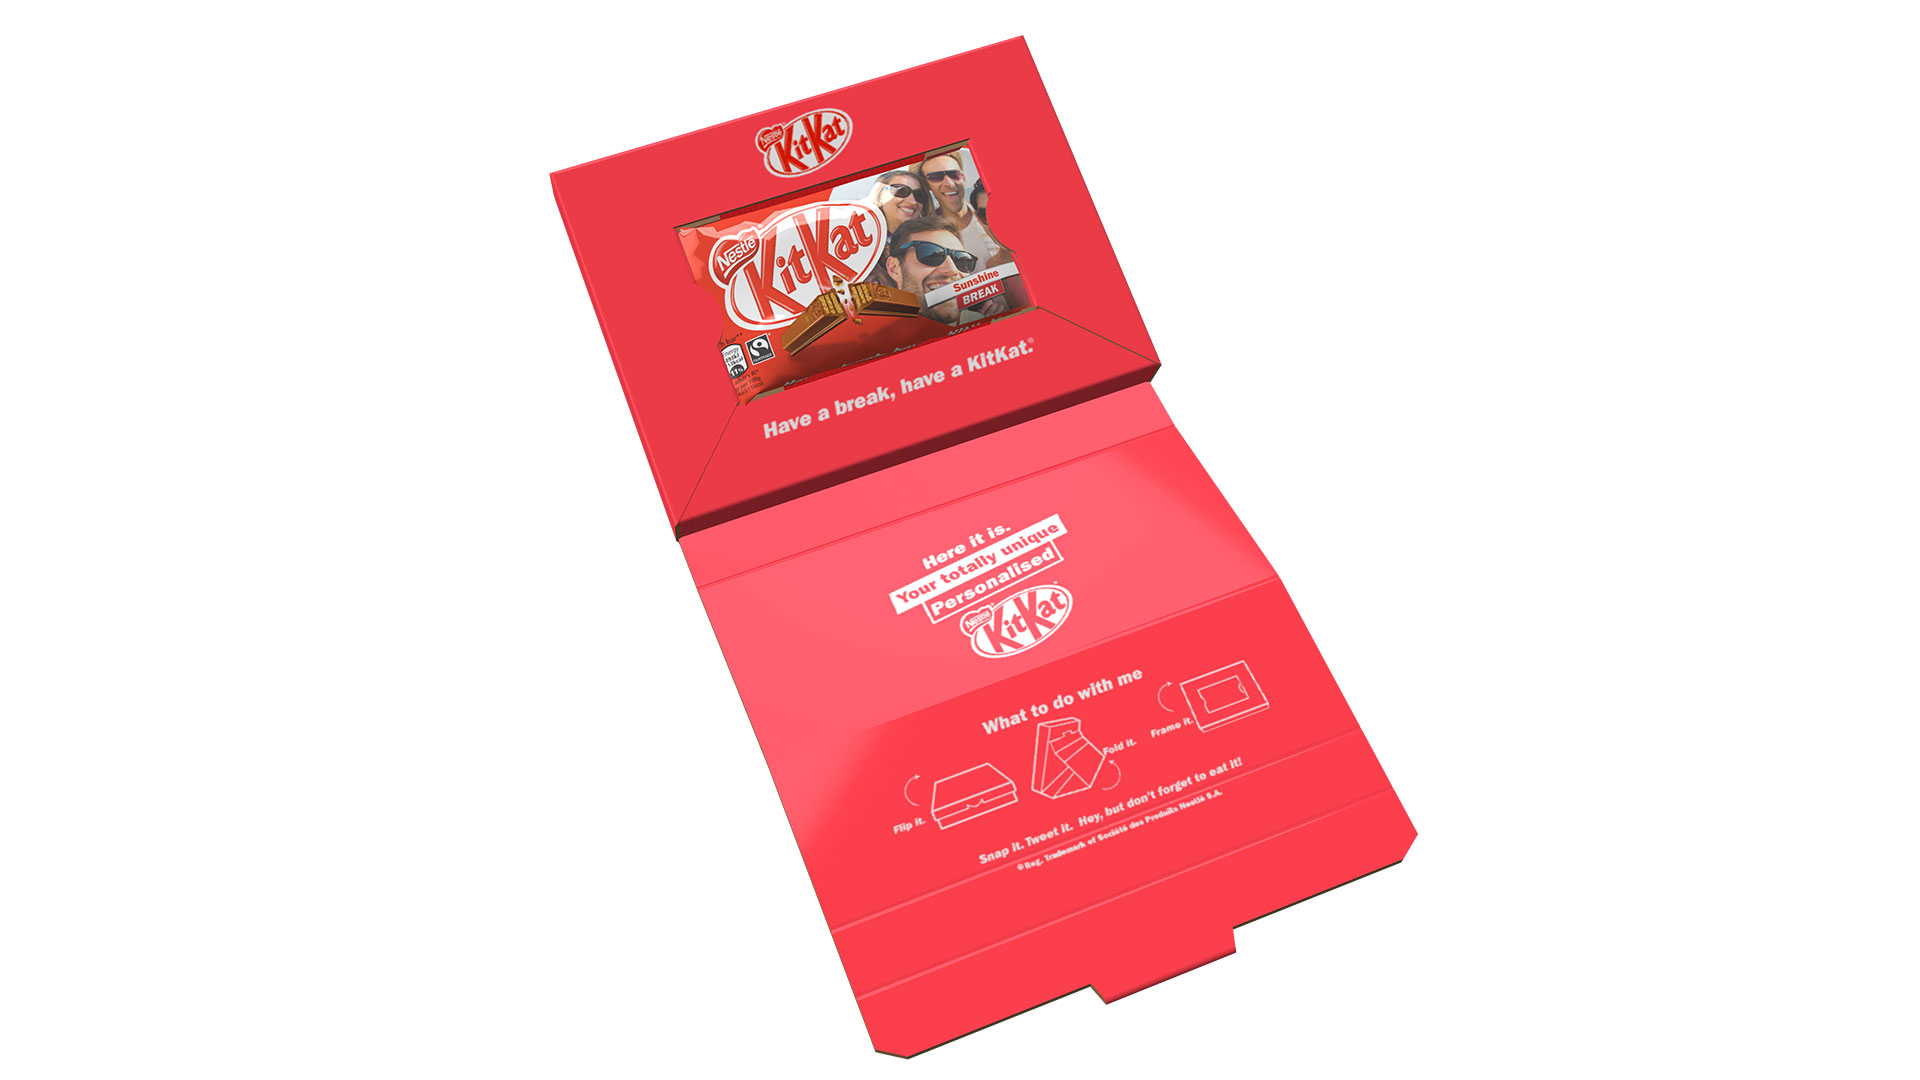 every_kitkat_is_delivered_in_a_gift_box_that_folds_into_a_frame_2_tcm245_2451502_tcm245_2451582_tcm245-2451502